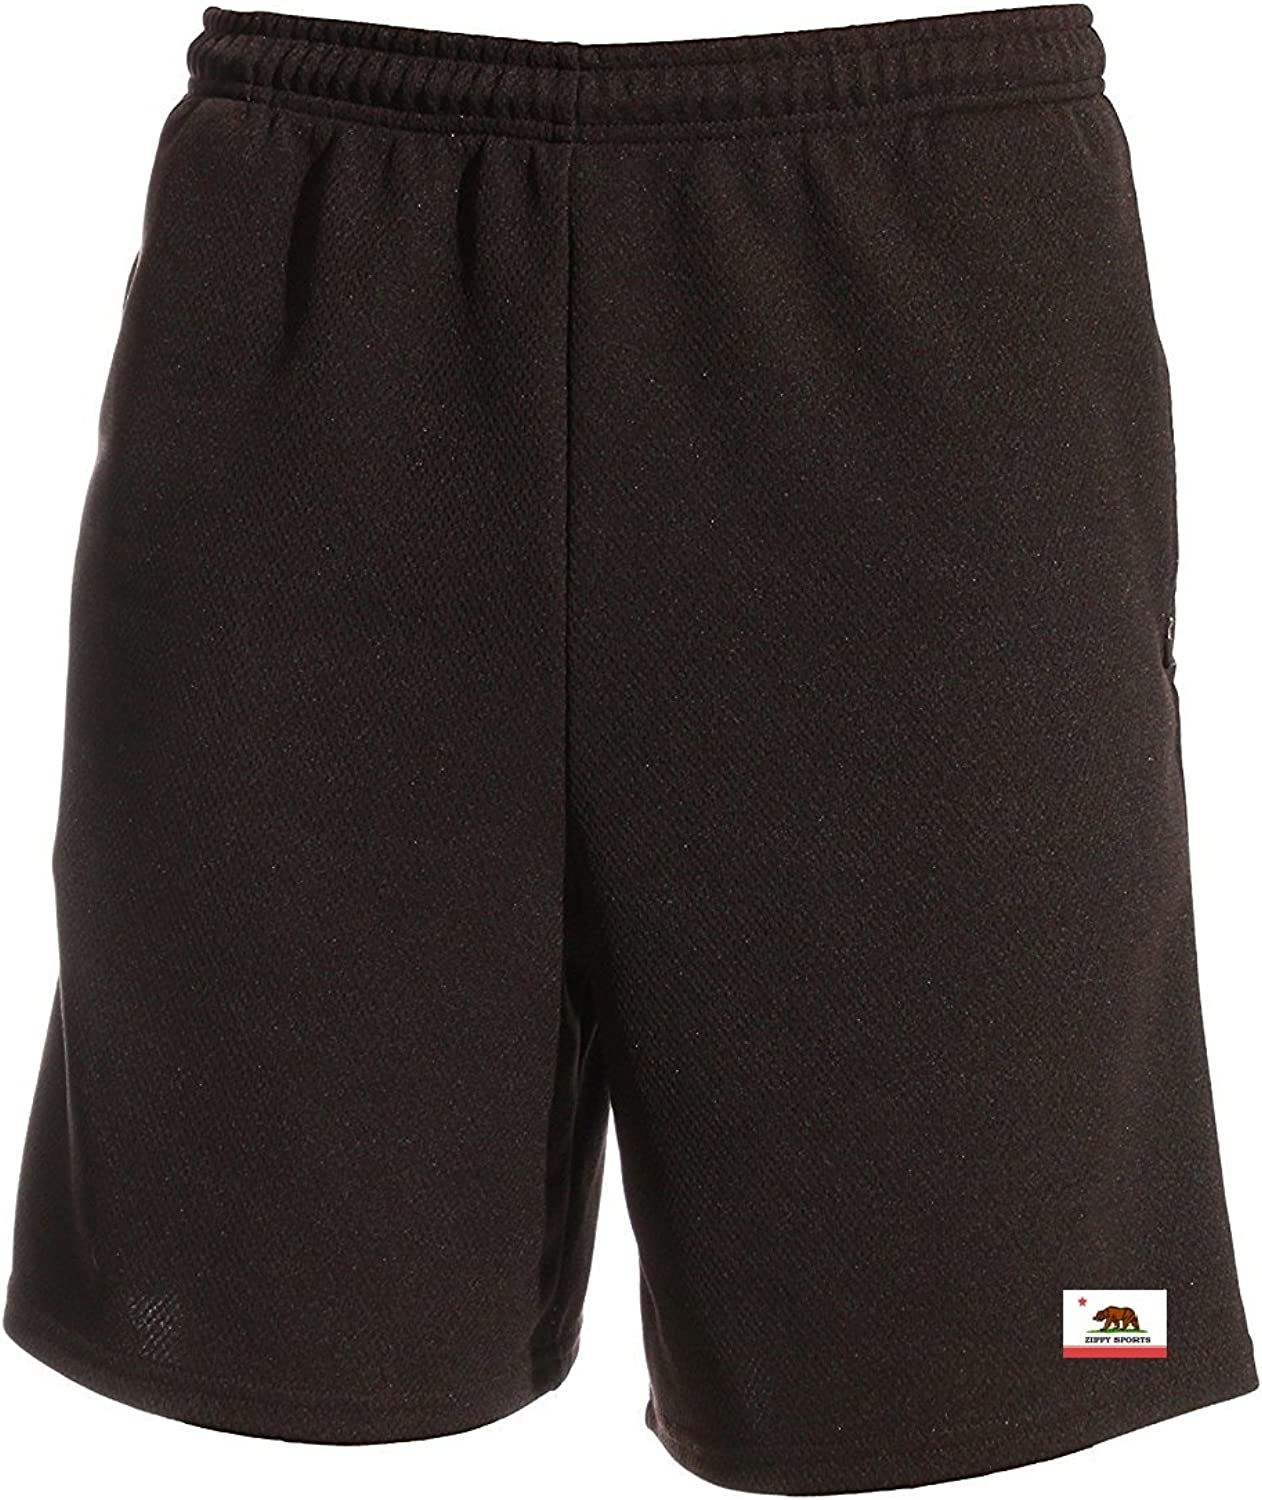 Shorts with Zipper Pockets Zip Zippered Mens and Womens Active Wear